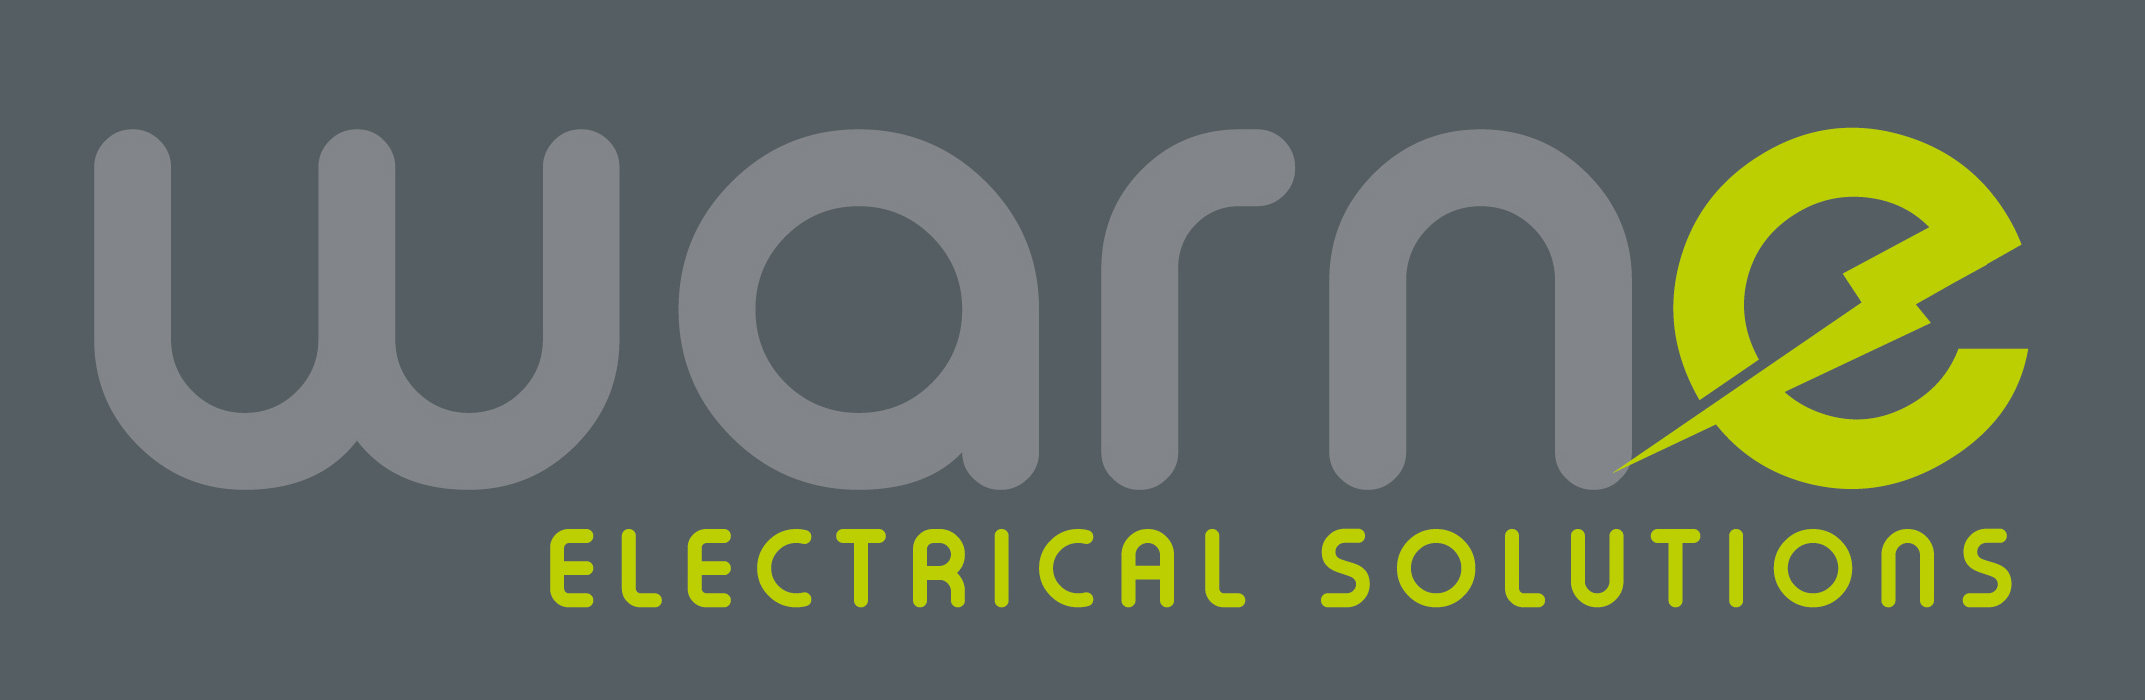 WARNE ELECTRICAL SOLUTIONS: LOGO IN GREY